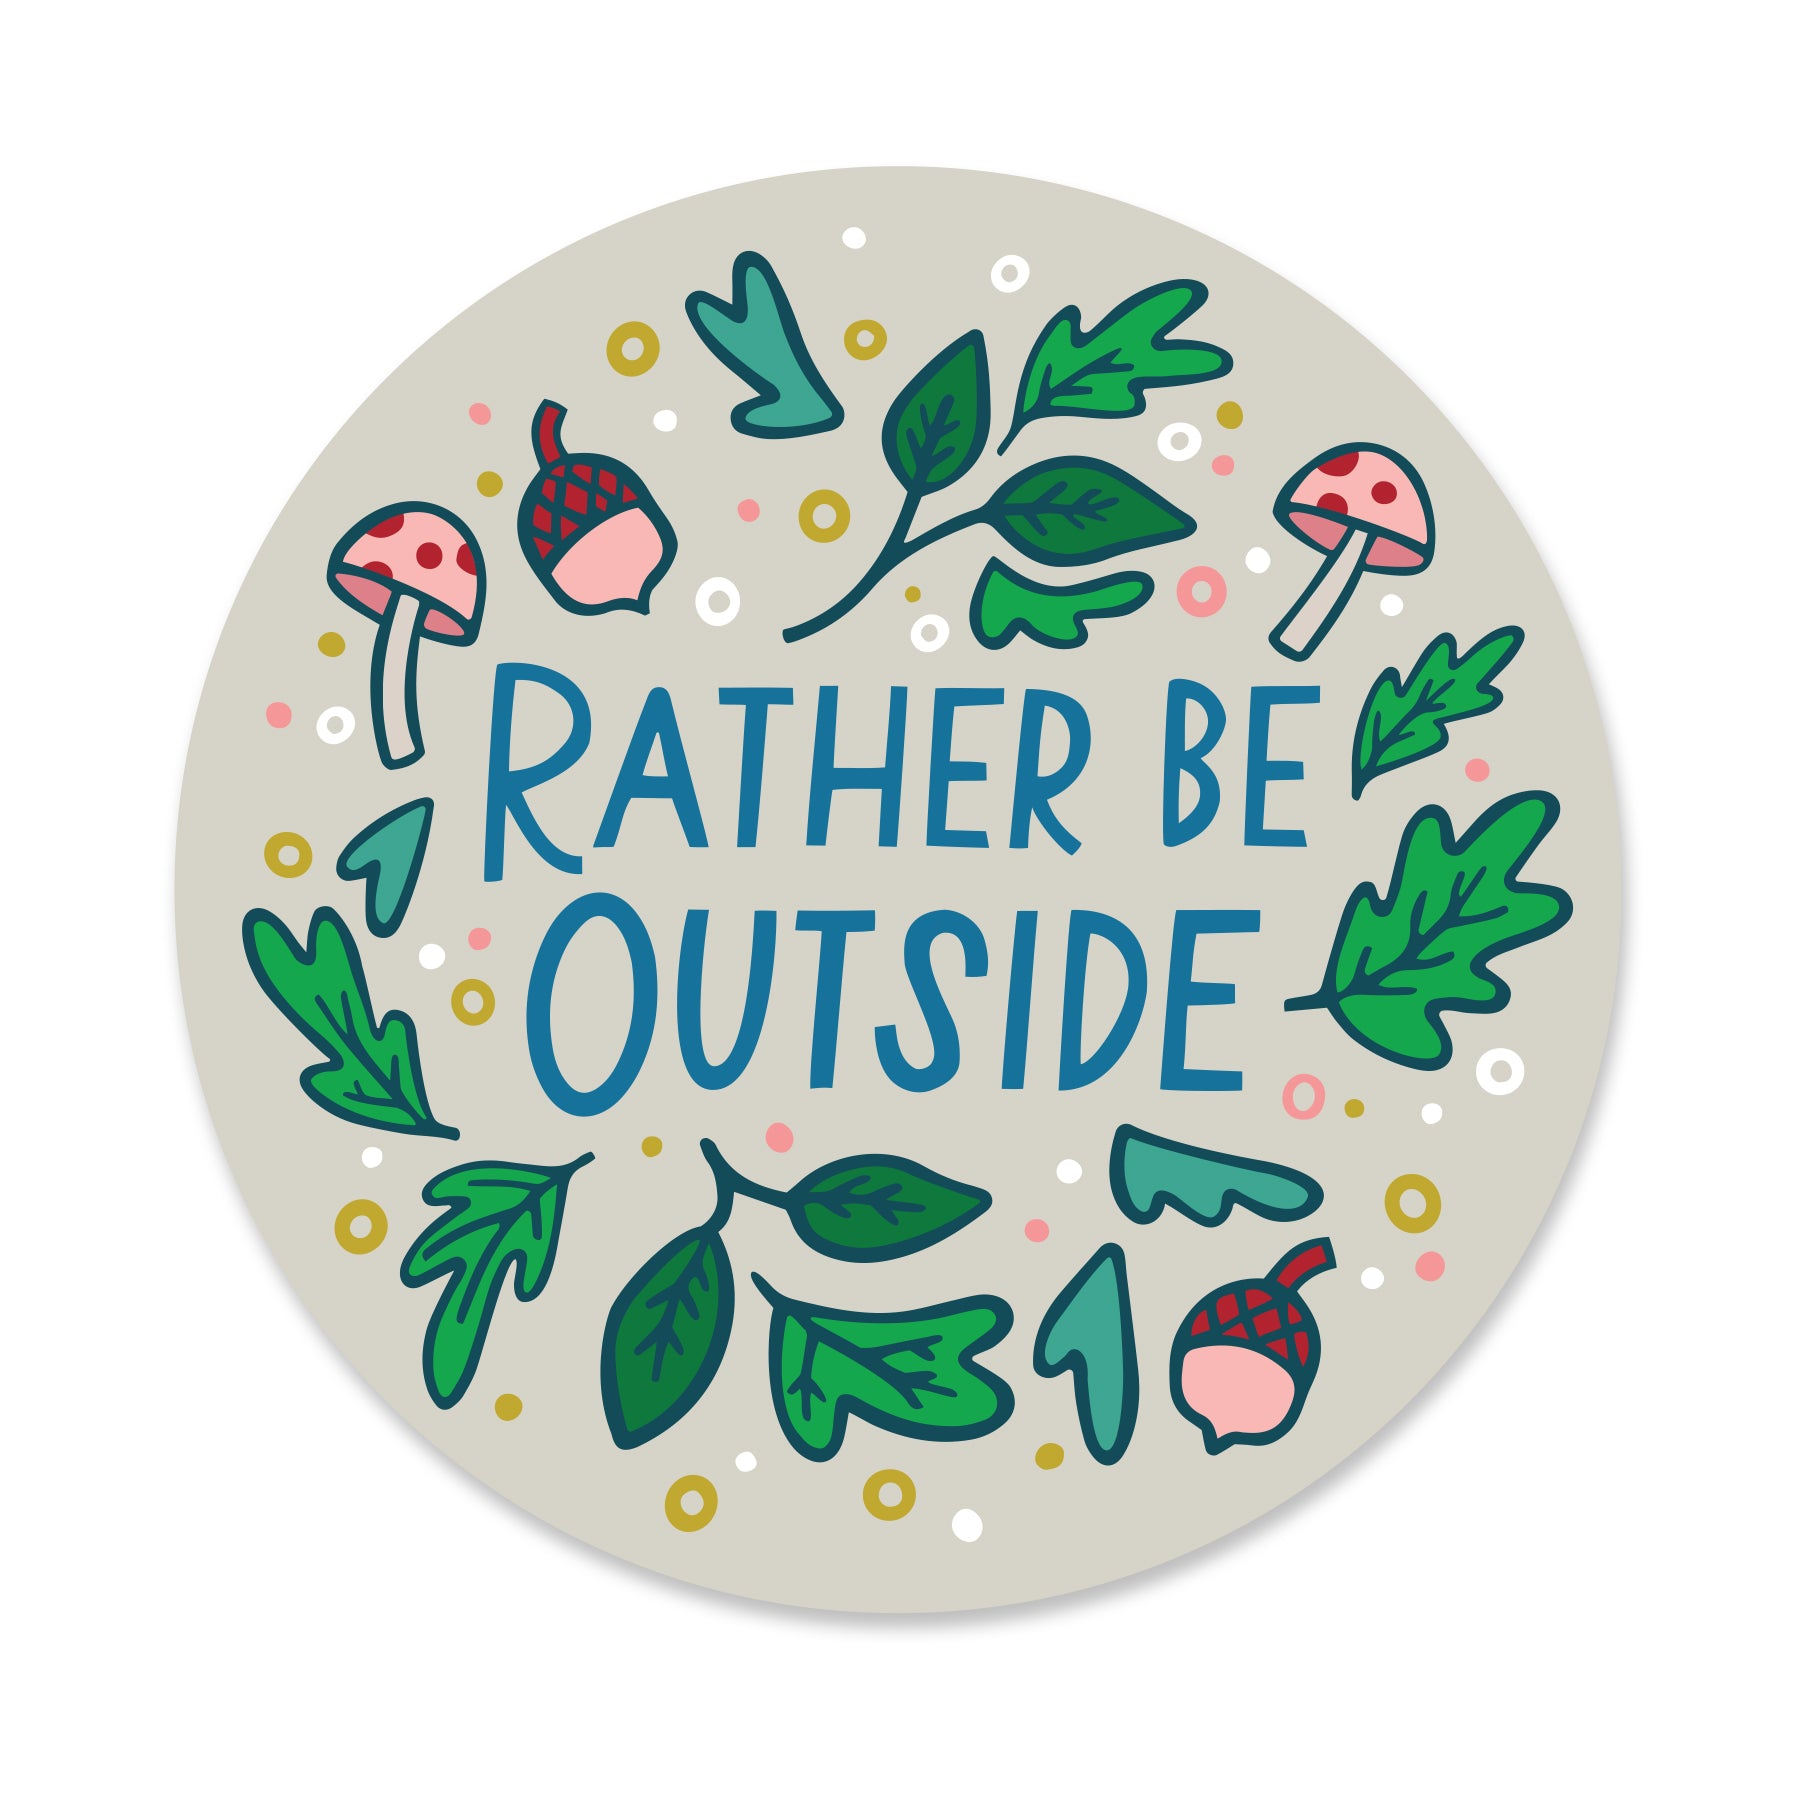 Rather Be Outside Sticker